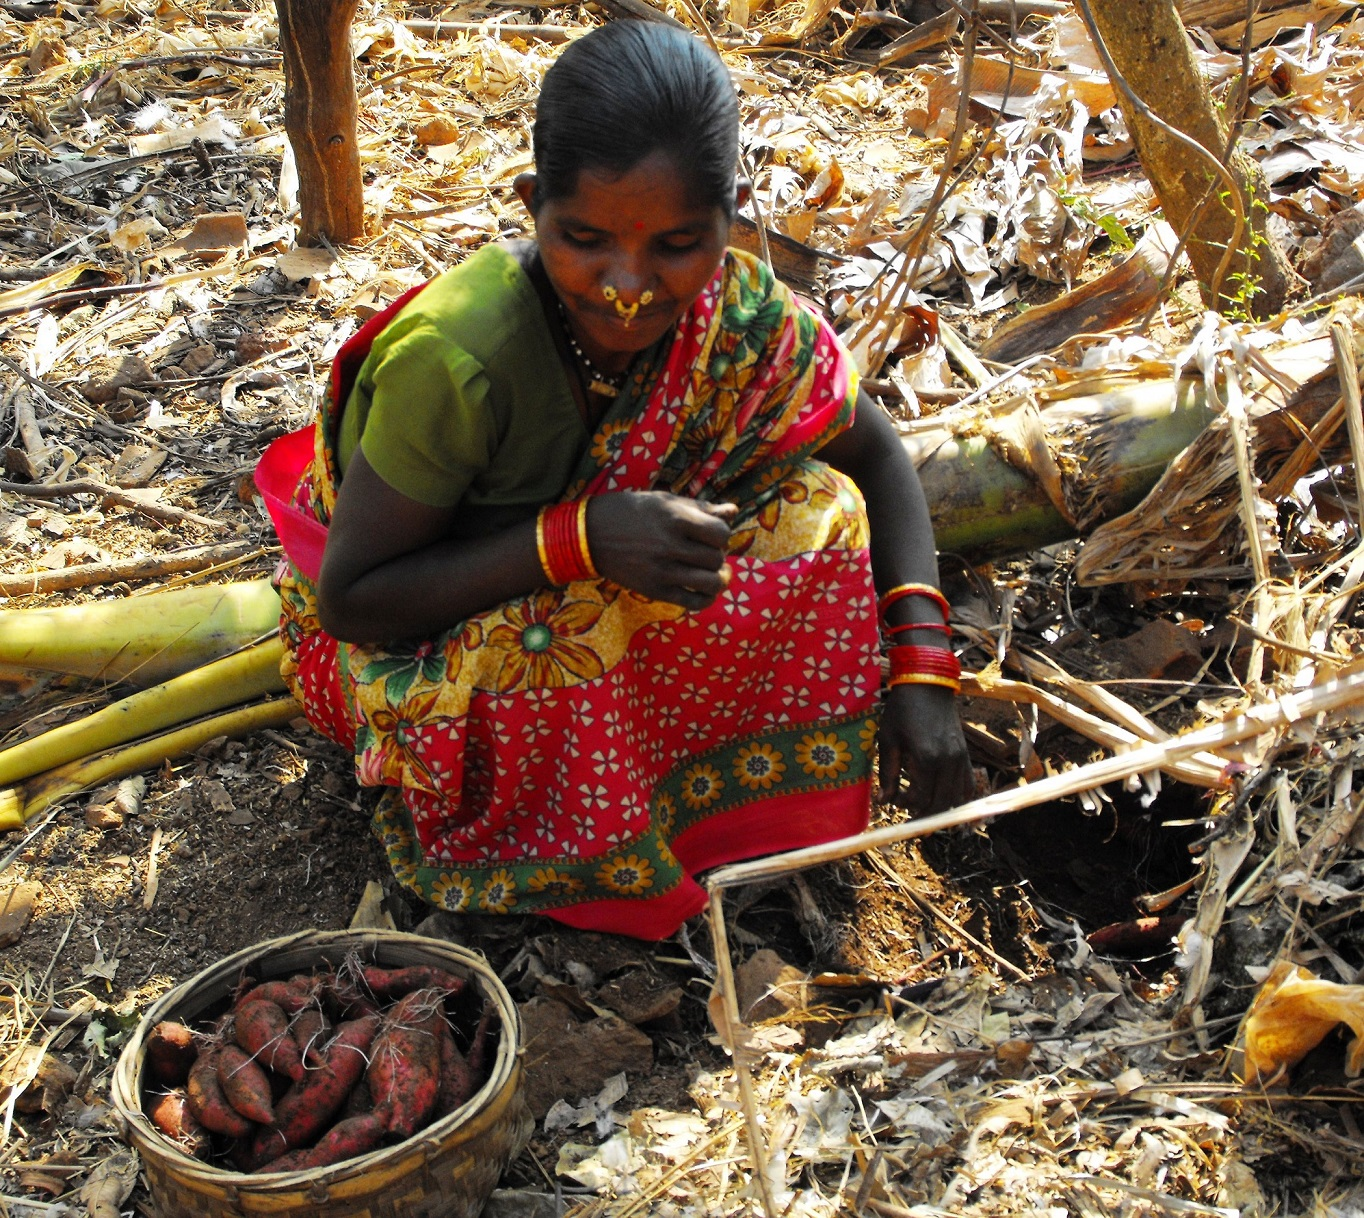 Shobini Muduli is delighted to harvest Sweet Potato